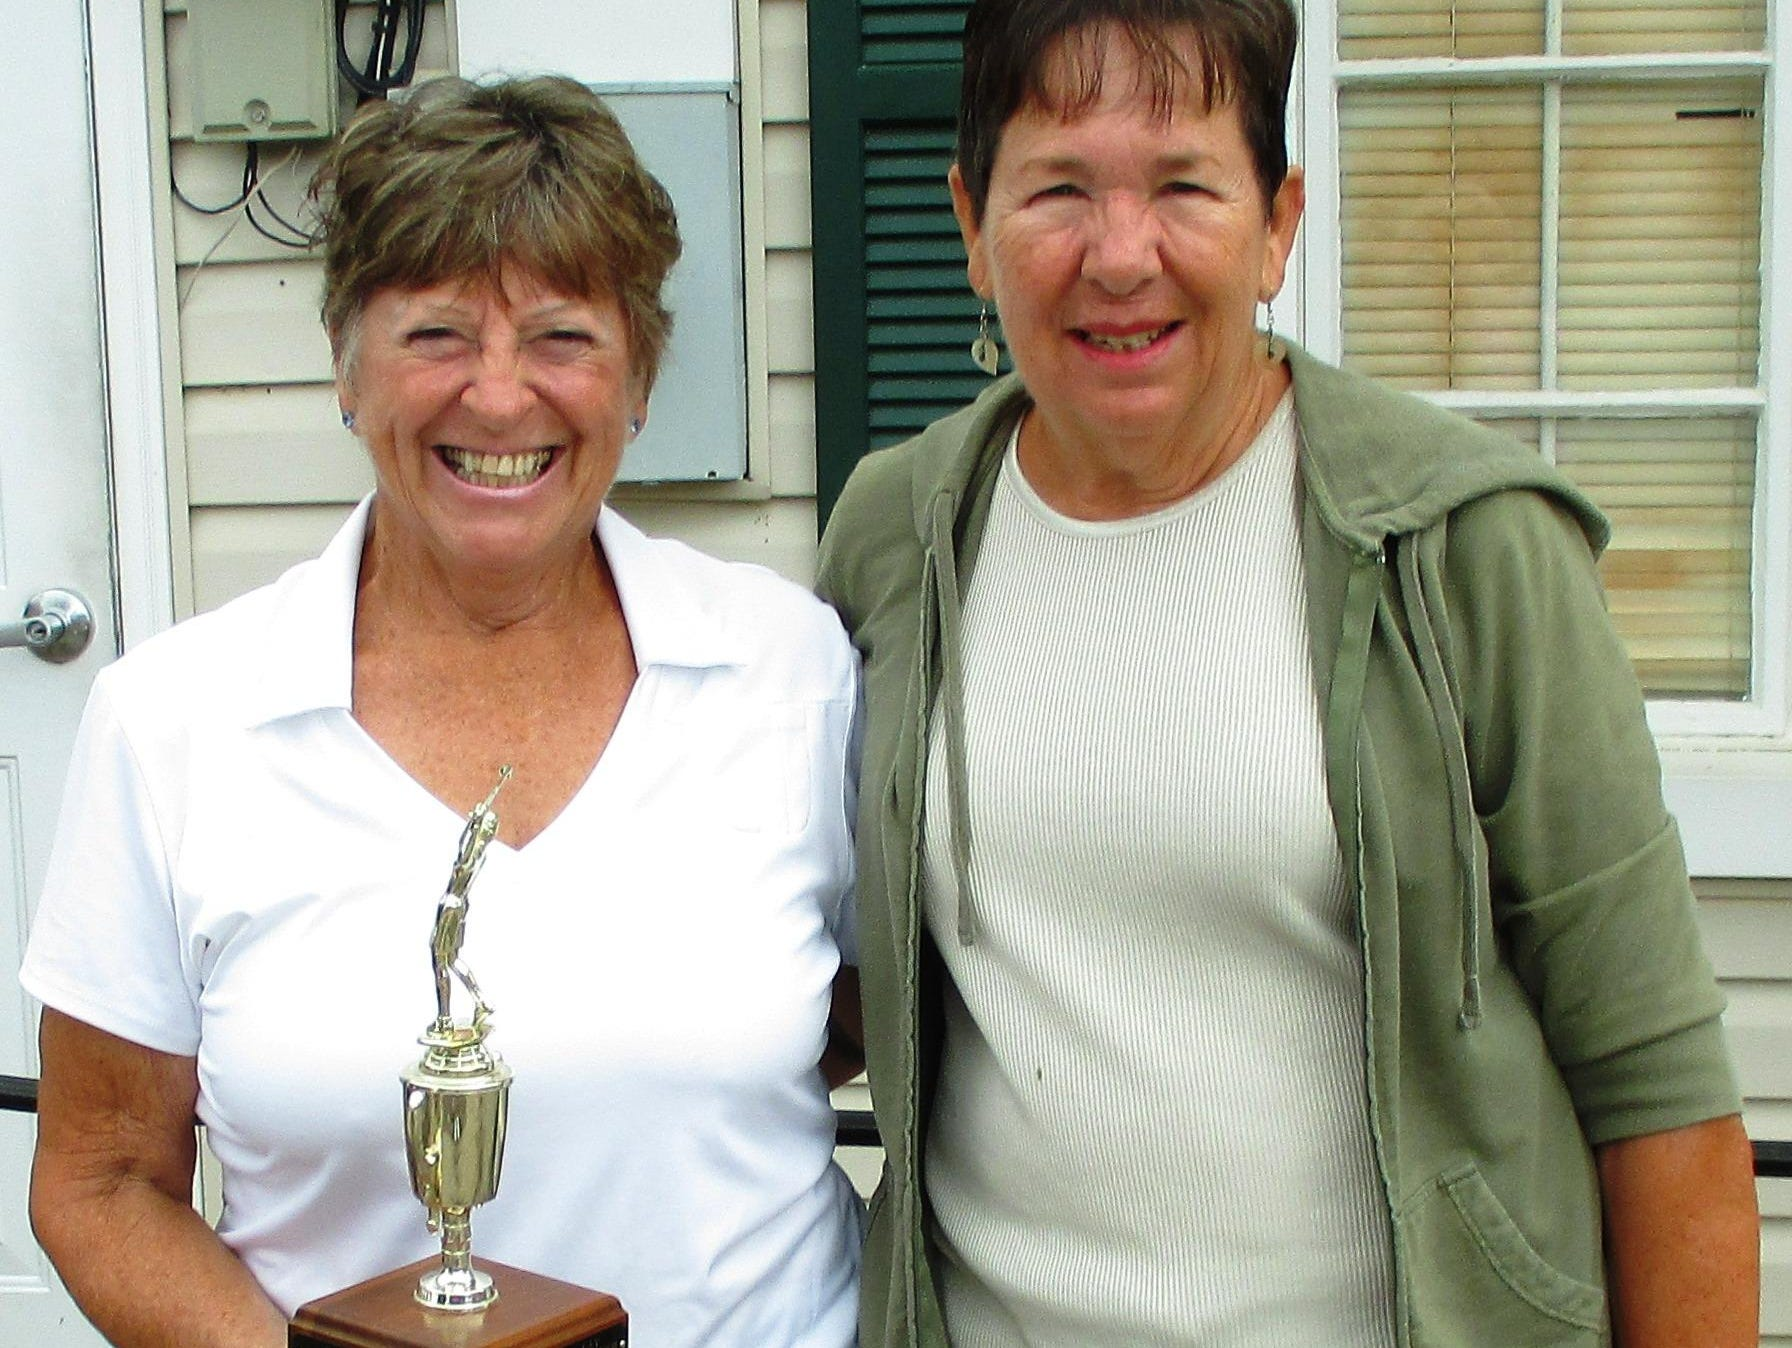 Bobbie Lent, left, holds the 2015 President's Cup after taking first place in the Twin Lakes Ladies Golf League match play event for 18-hole players, which ran through June. Gail Alter took second place. The ladies league has held the President's Cup tournament for more than 20 years.